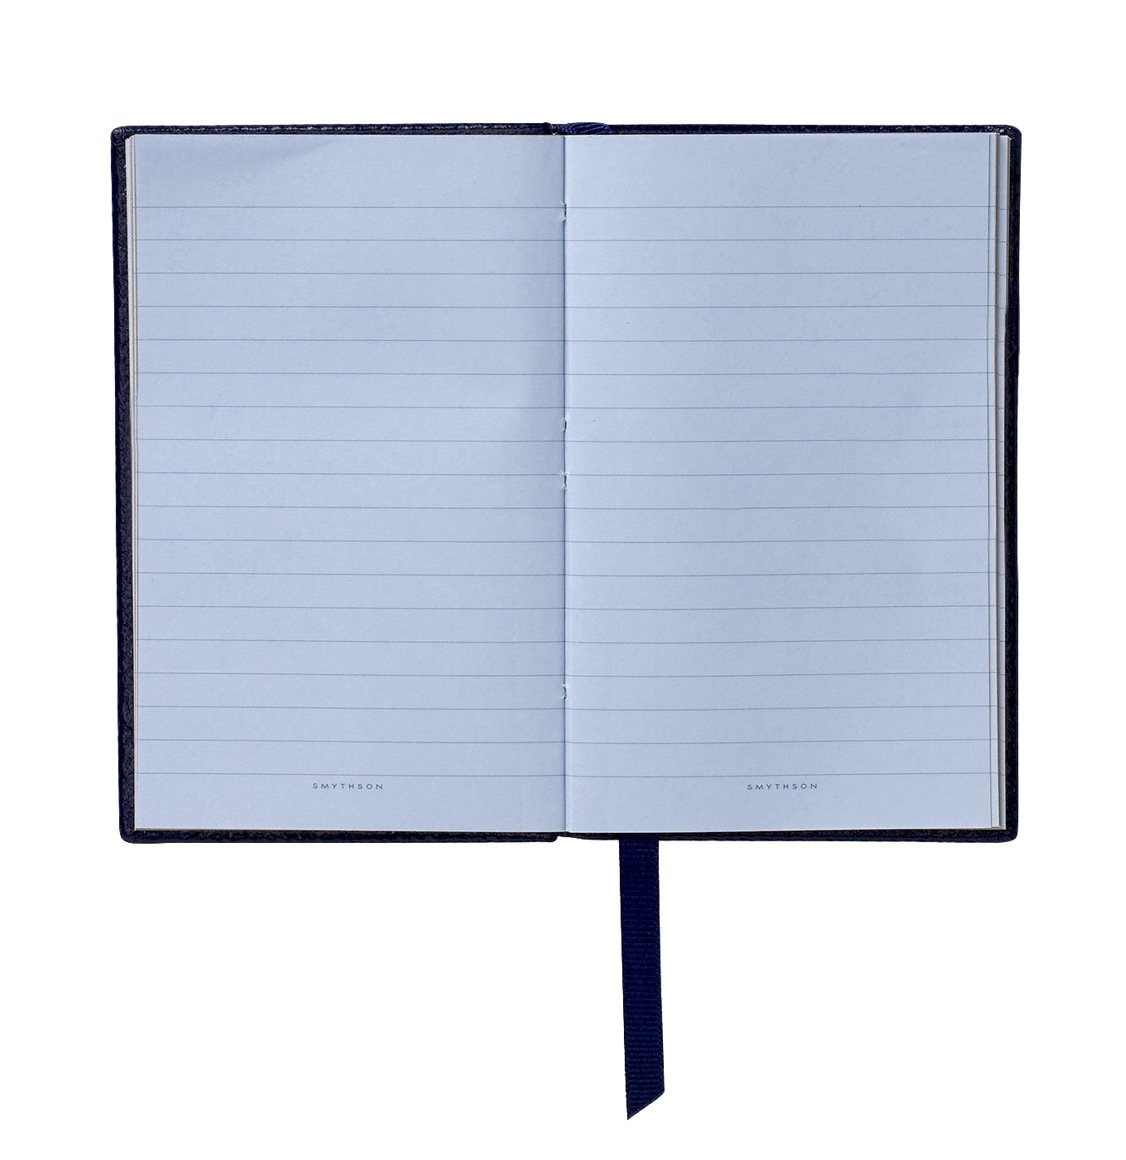 Smythson Panama Cross-Grain Leather The Boss Wafer Notebook